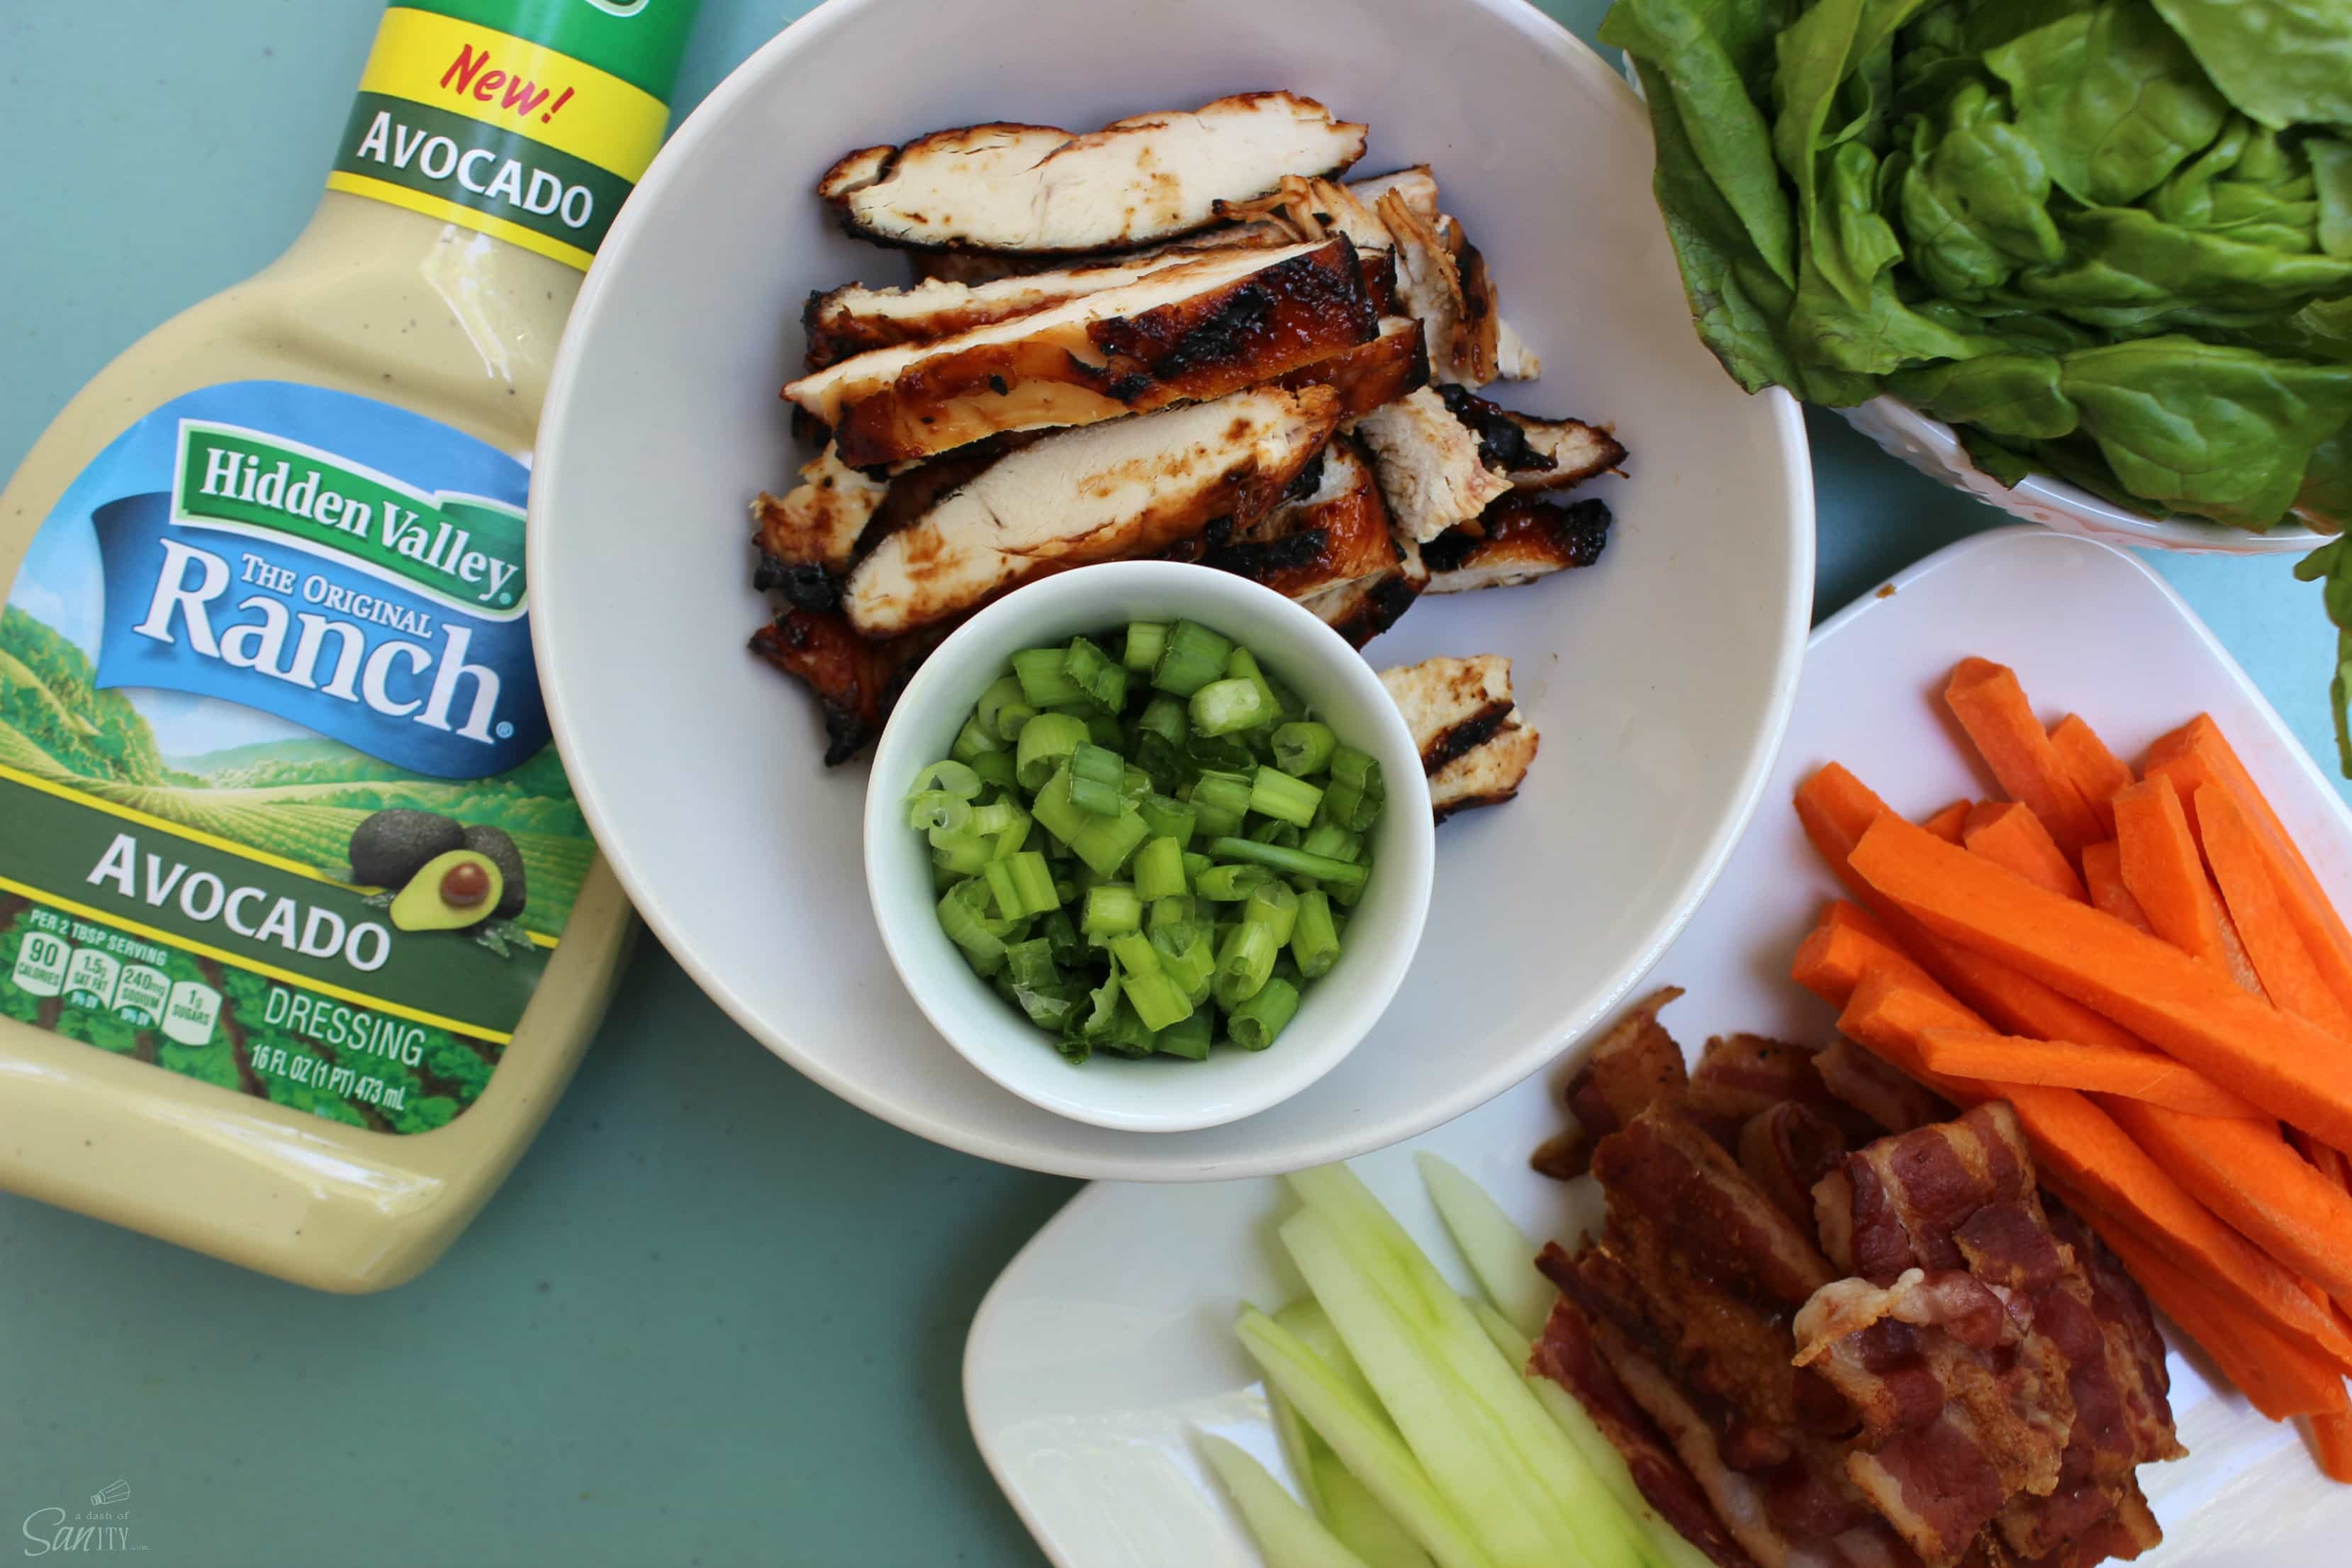 Barbecue Chicken Spring Rolls are full of flavor with fresh vegetables, barbecue chicken, bacon, Avocado Ranch dressing, and a drizzle of barbecue sauce.